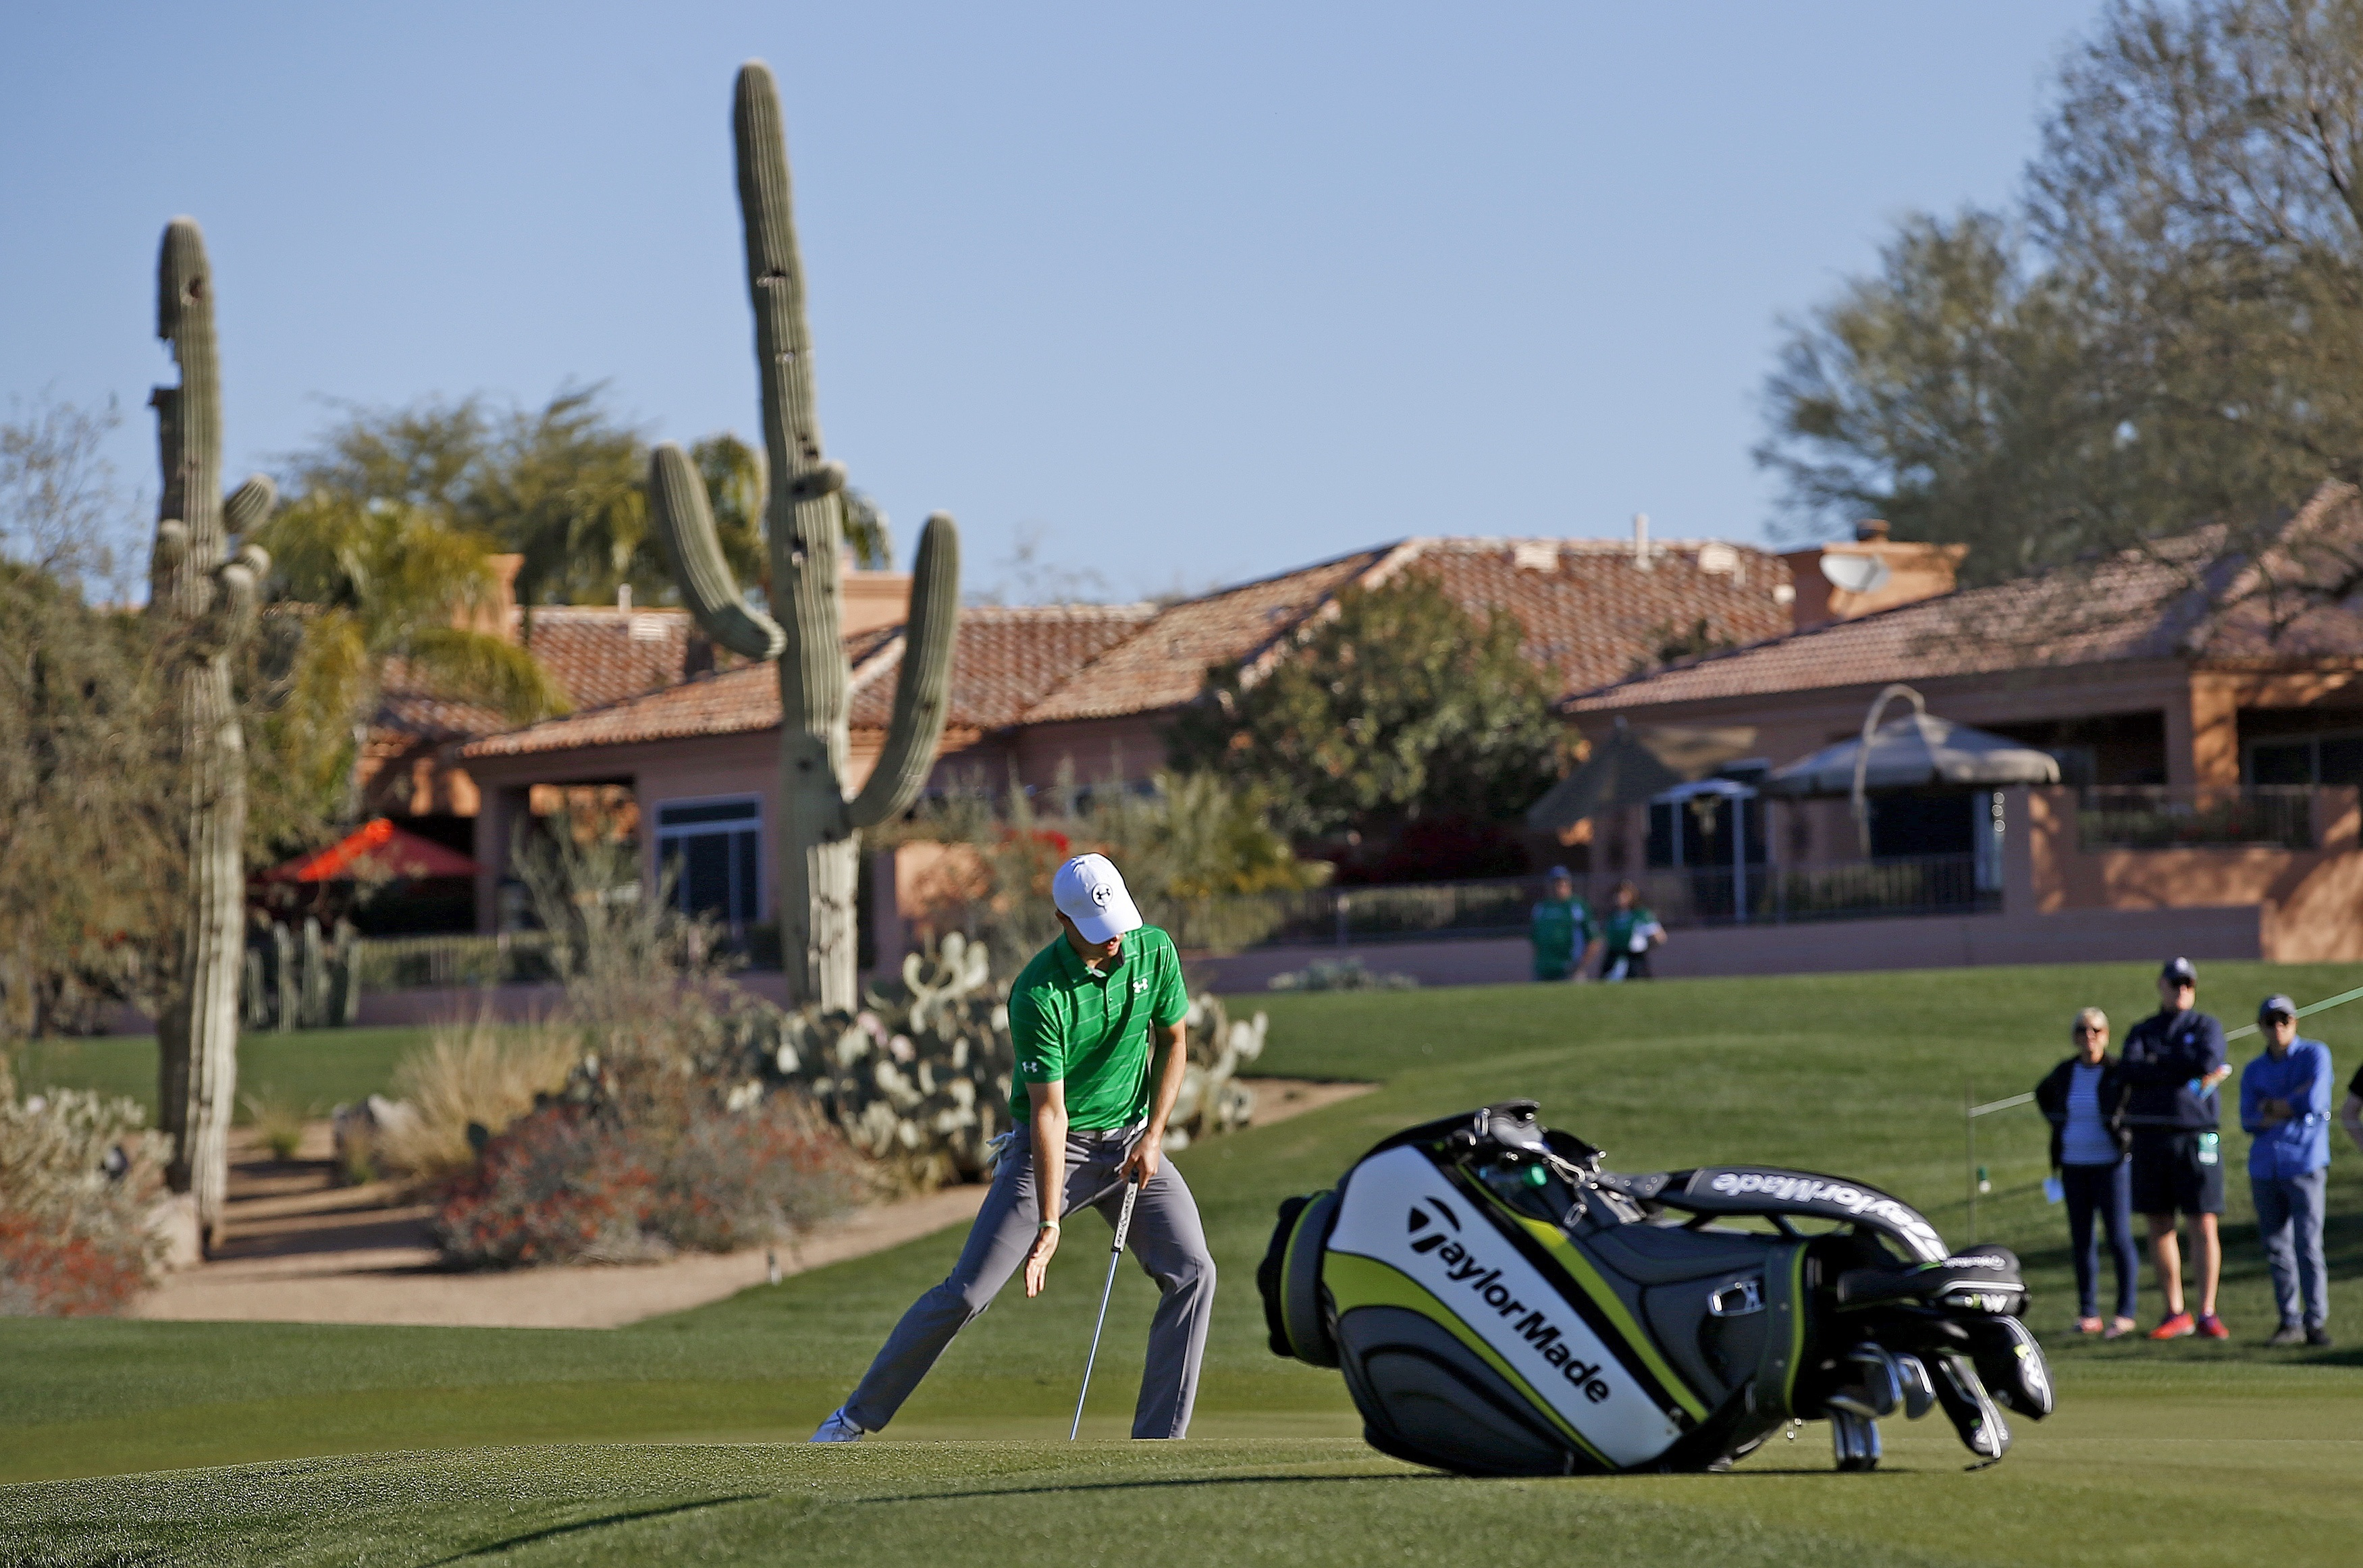 Jordan Spieth tries to coax a putt on the second hole during the third round of the Waste Management Phoenix Open golf tournament Saturday, Feb. 4, 2017, in Scottsdale, Ariz. (AP Photo/Ross D. Franklin)